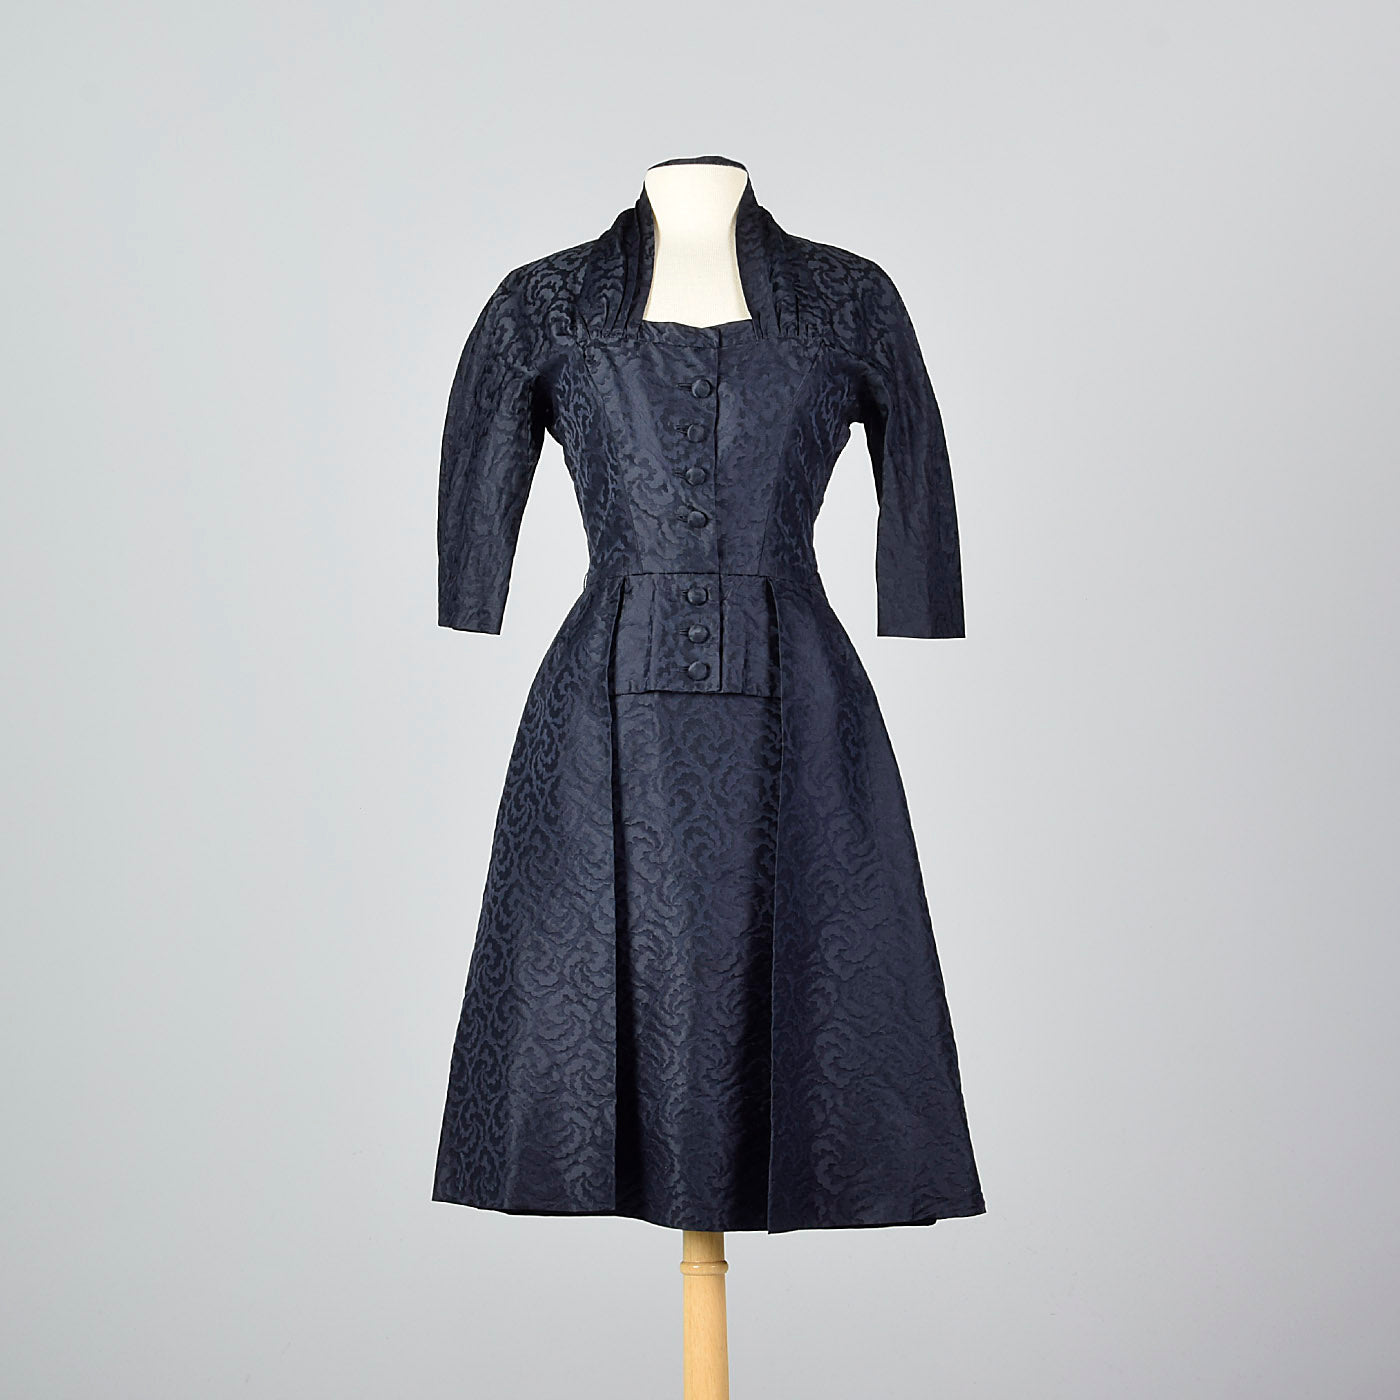 1950s Pierre Balmain Navy Blue Silk Damask Cocktail Dress